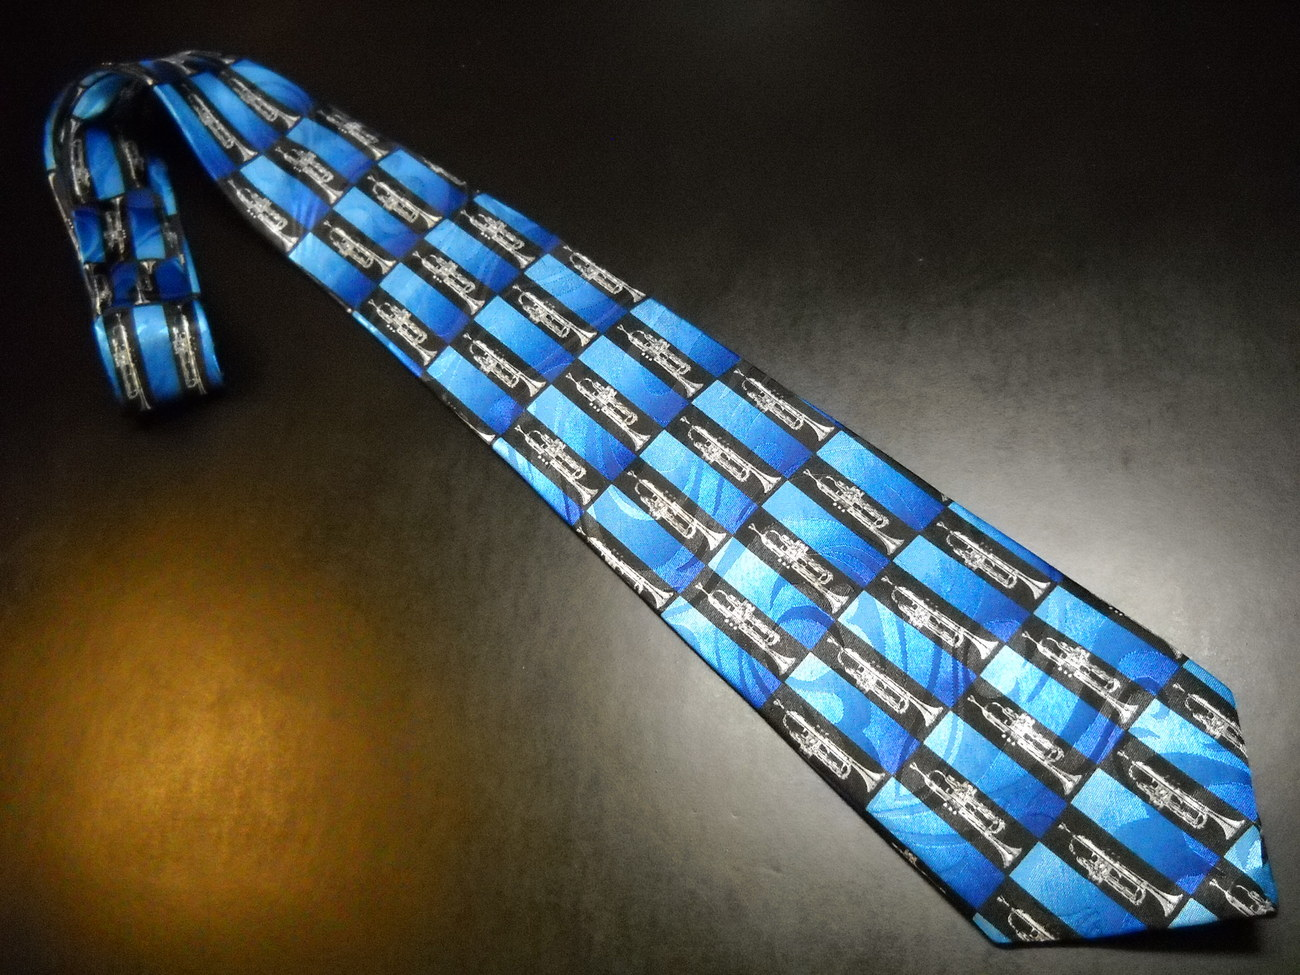 Steven Harris Neck Tie Hand Made Silver Trumpets on Black and Blue Polyester - $11.99